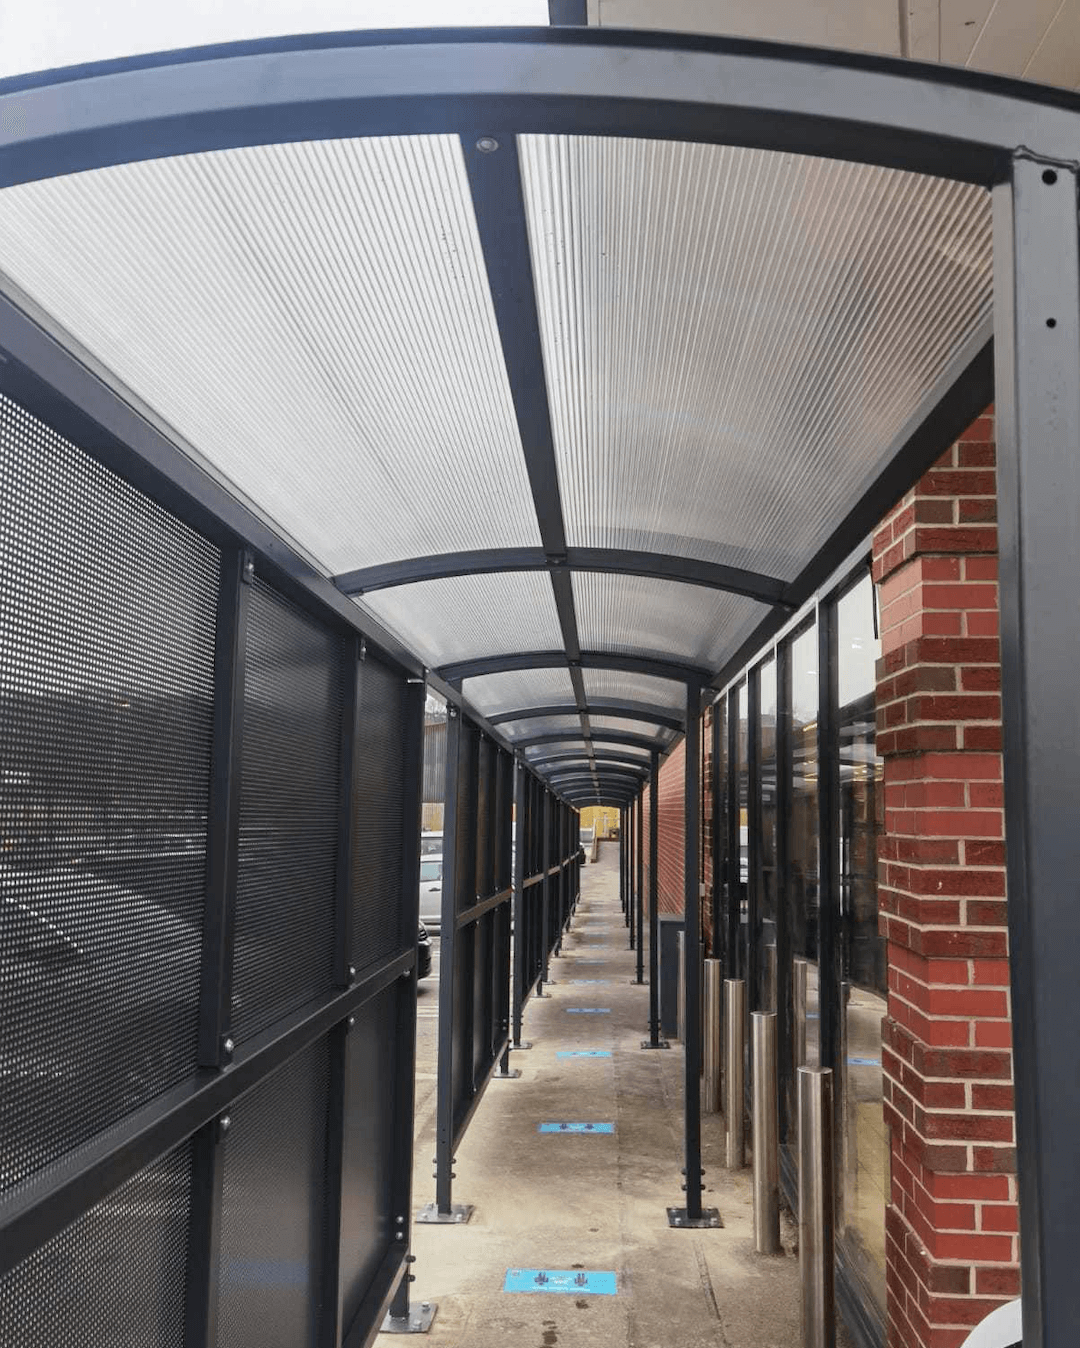 aldi – various stores – wet weather queuing solutions 2